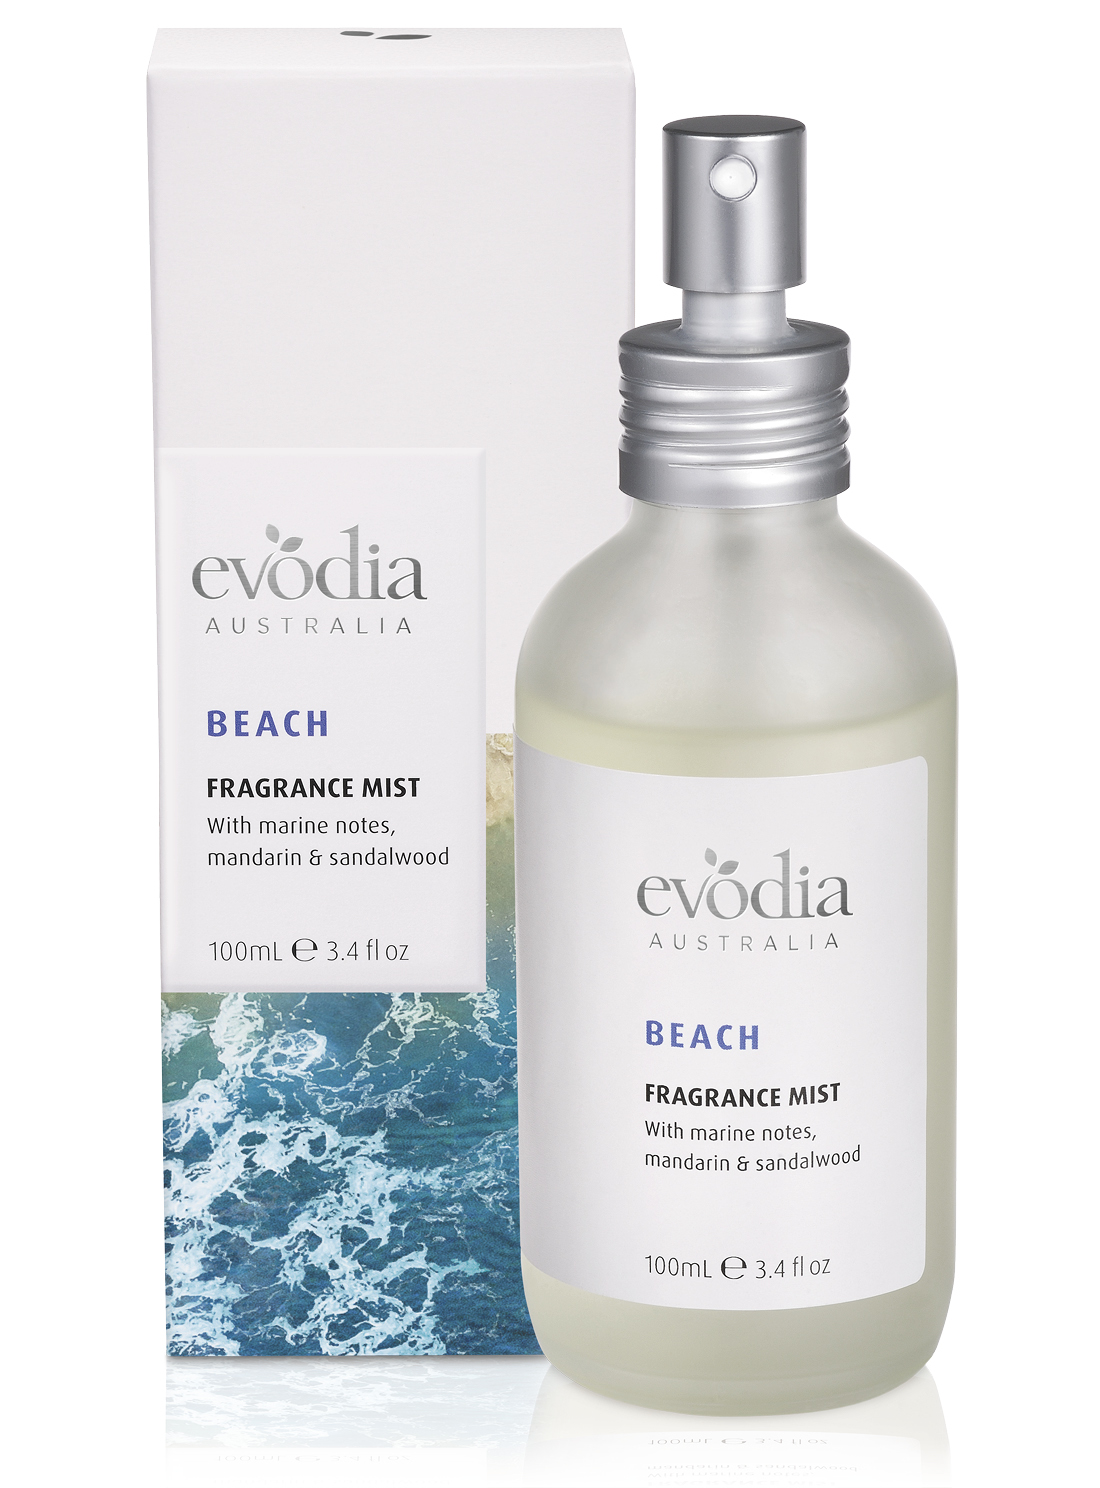 Beach Fragrance Mist